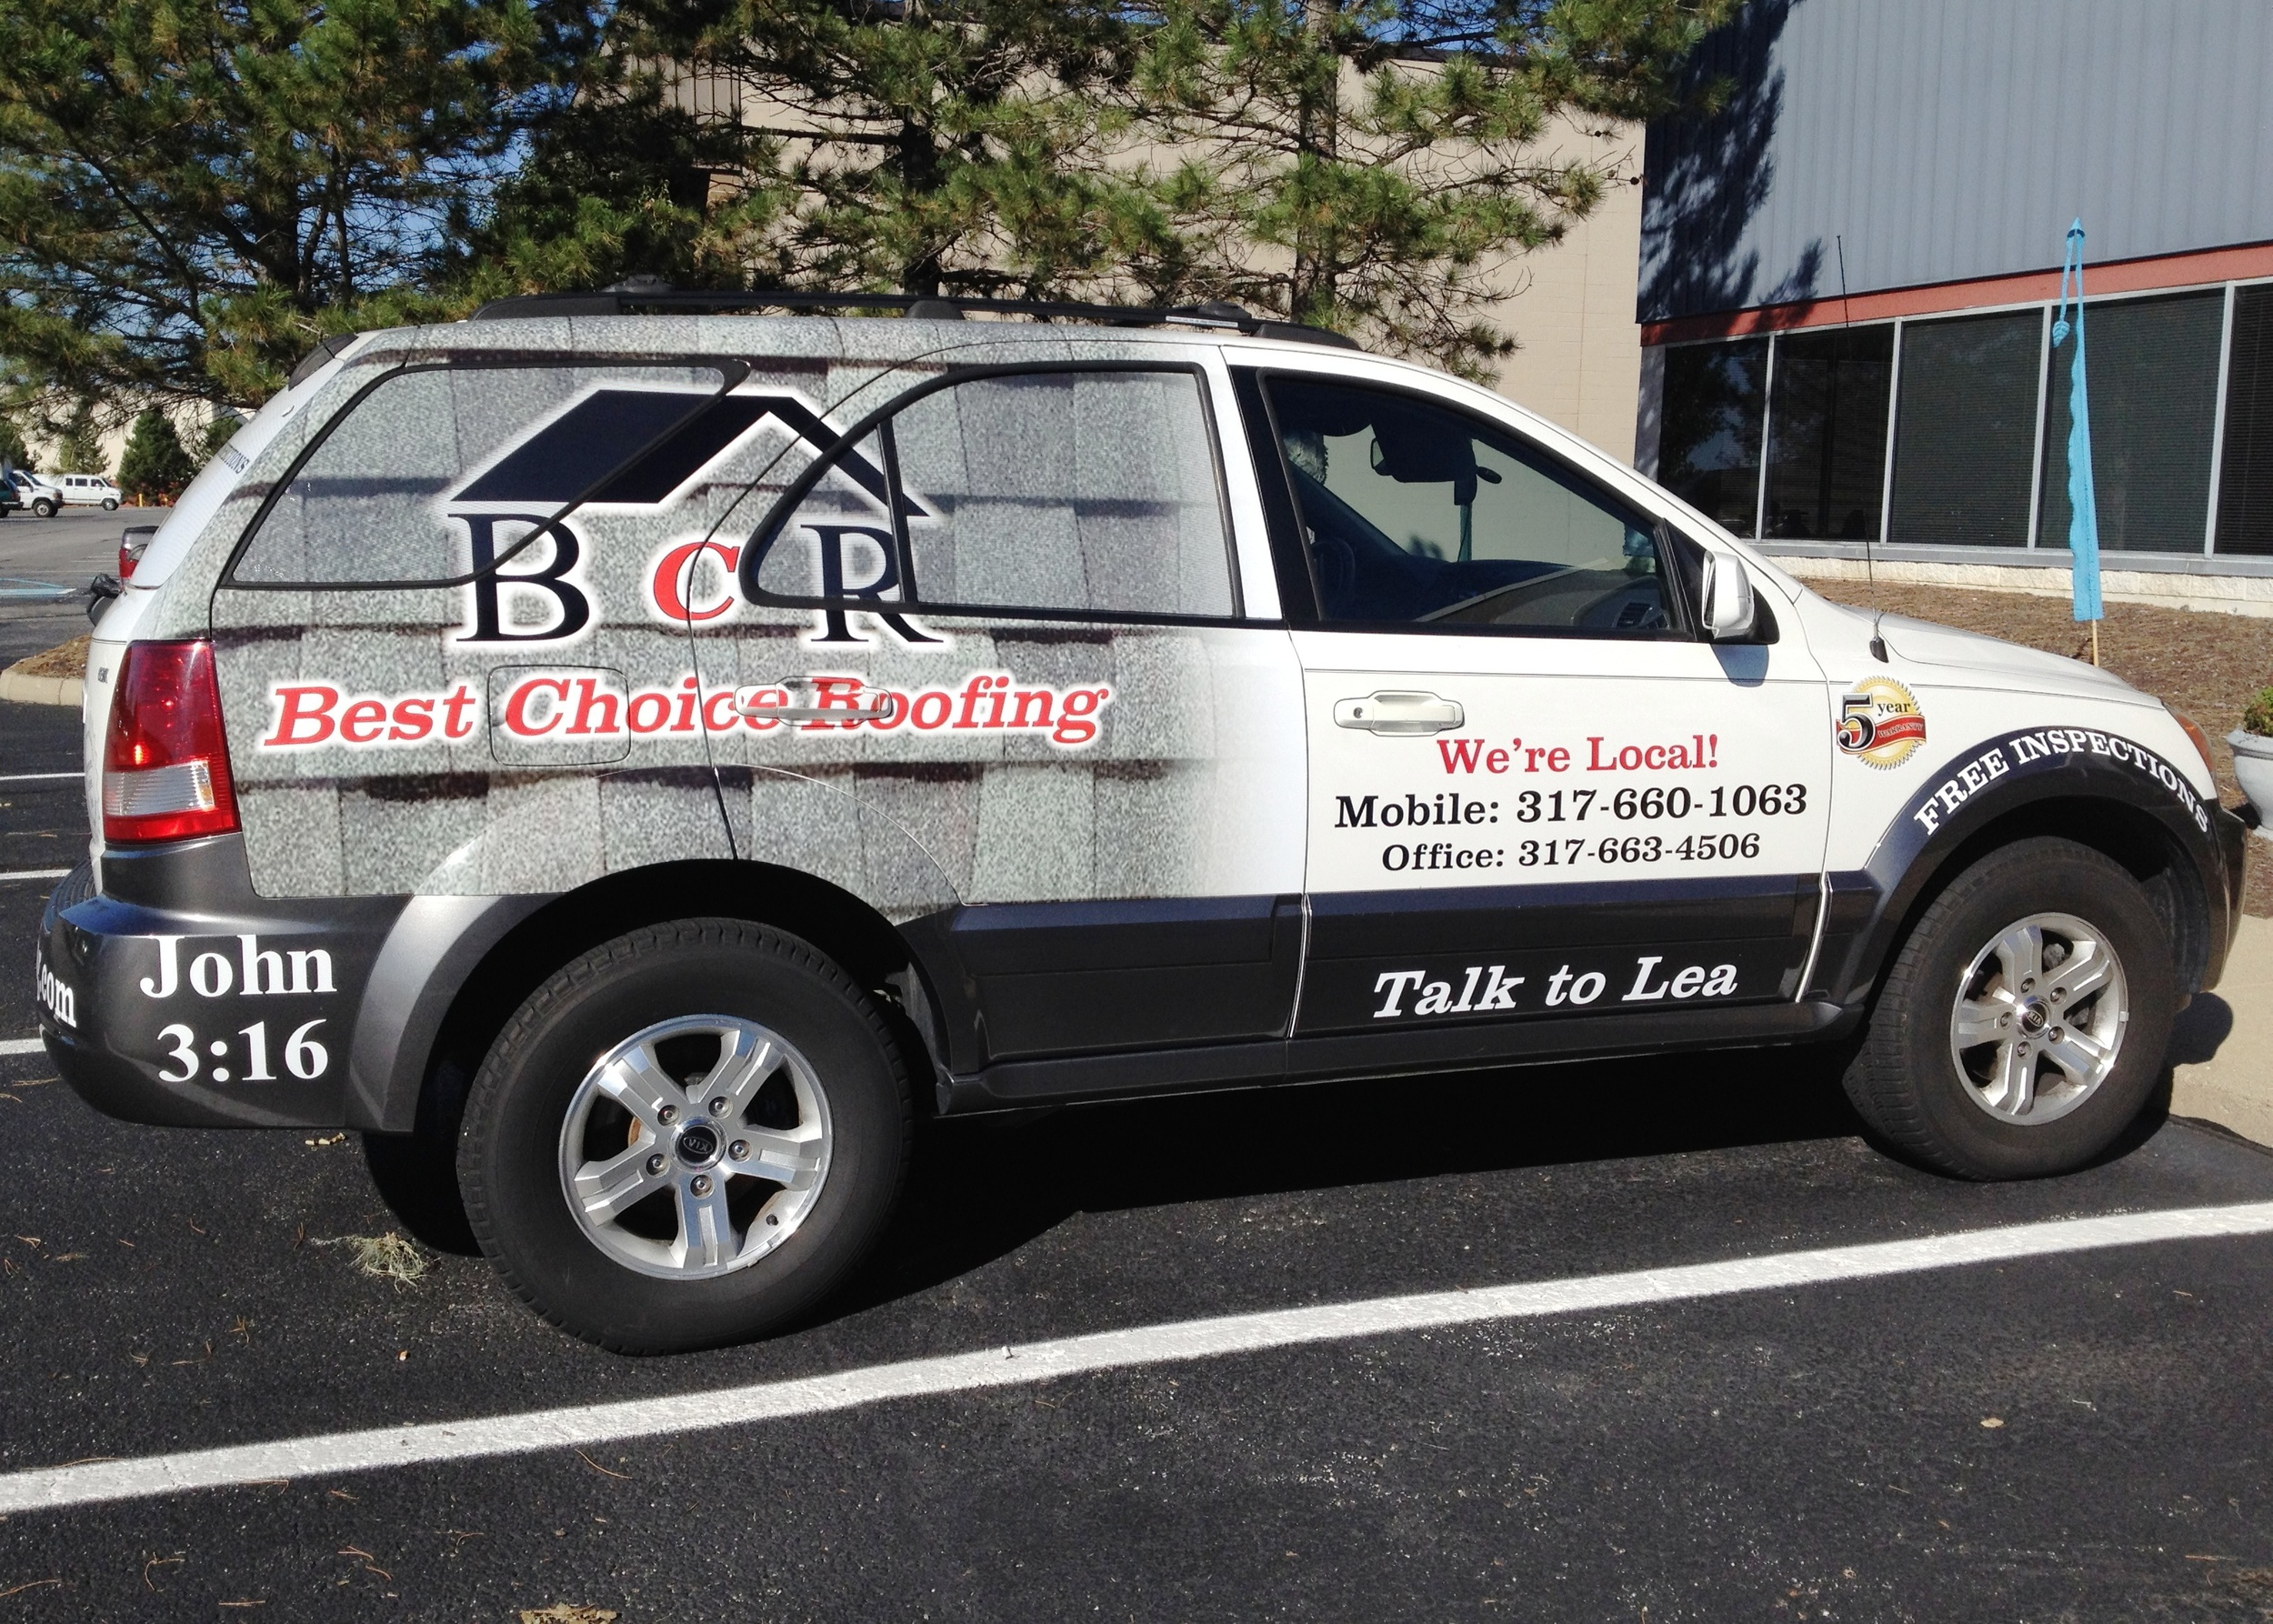 Partial Digitally Printed Car Wrap for Best Choice Roofing